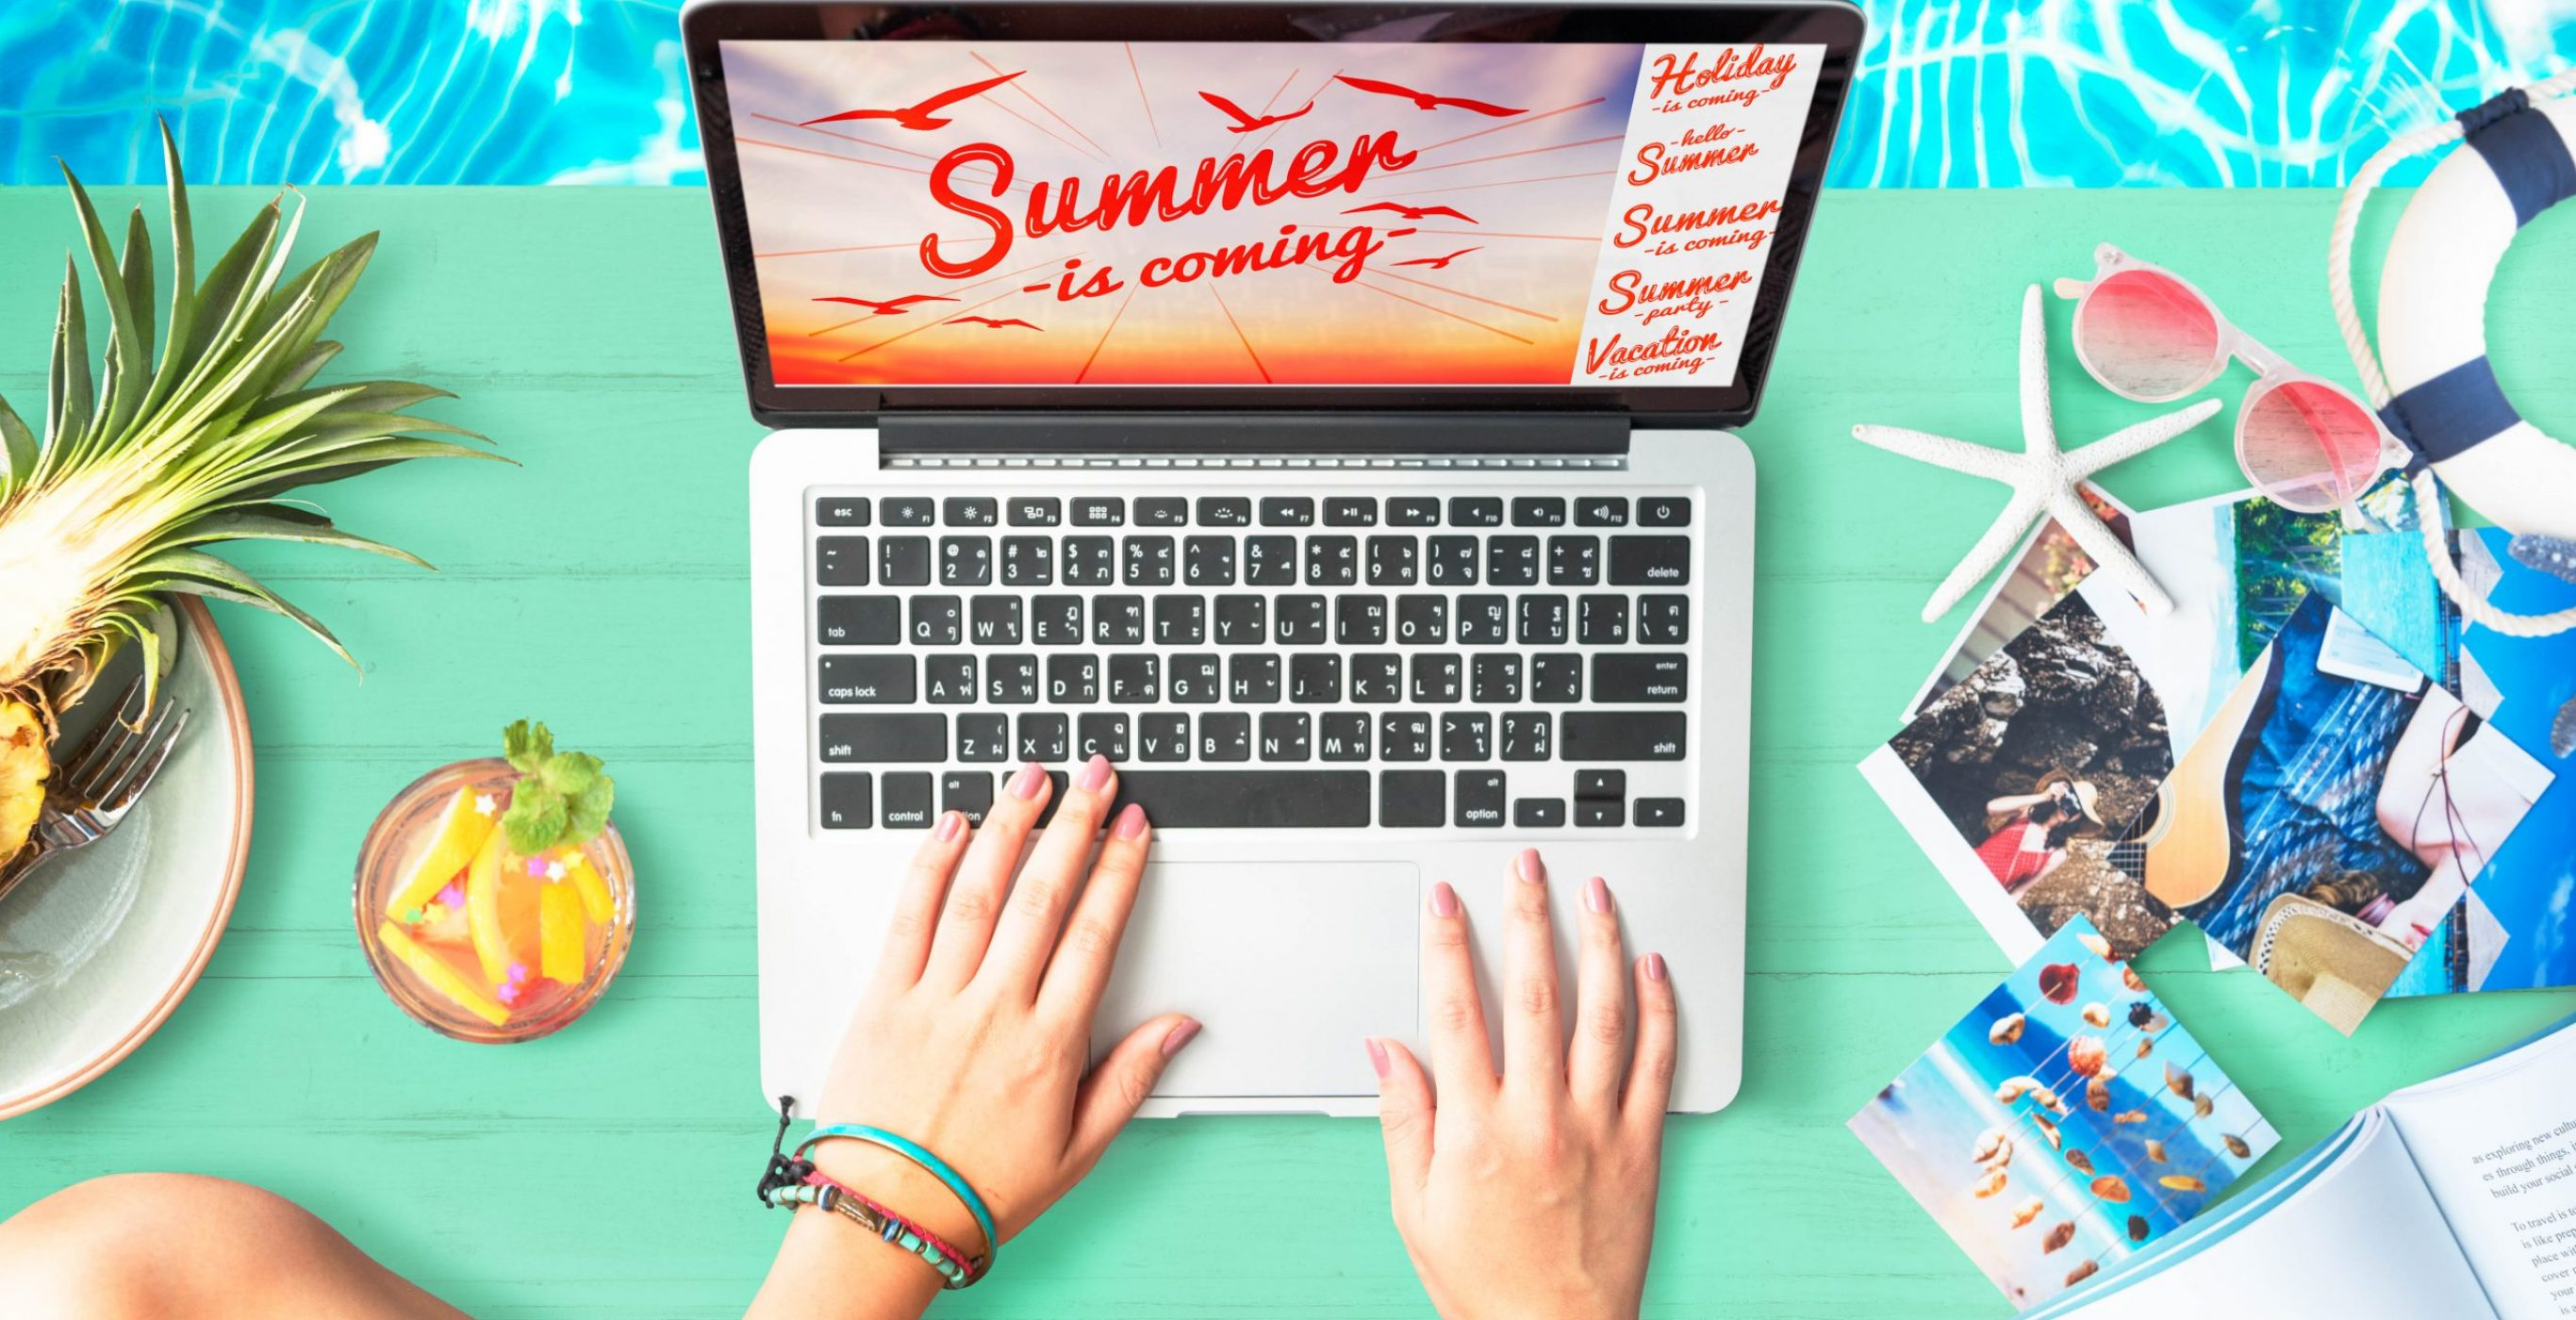 A mockup of a laptop and other beach- and summer-themed items and accessories, used as a featured image for the article